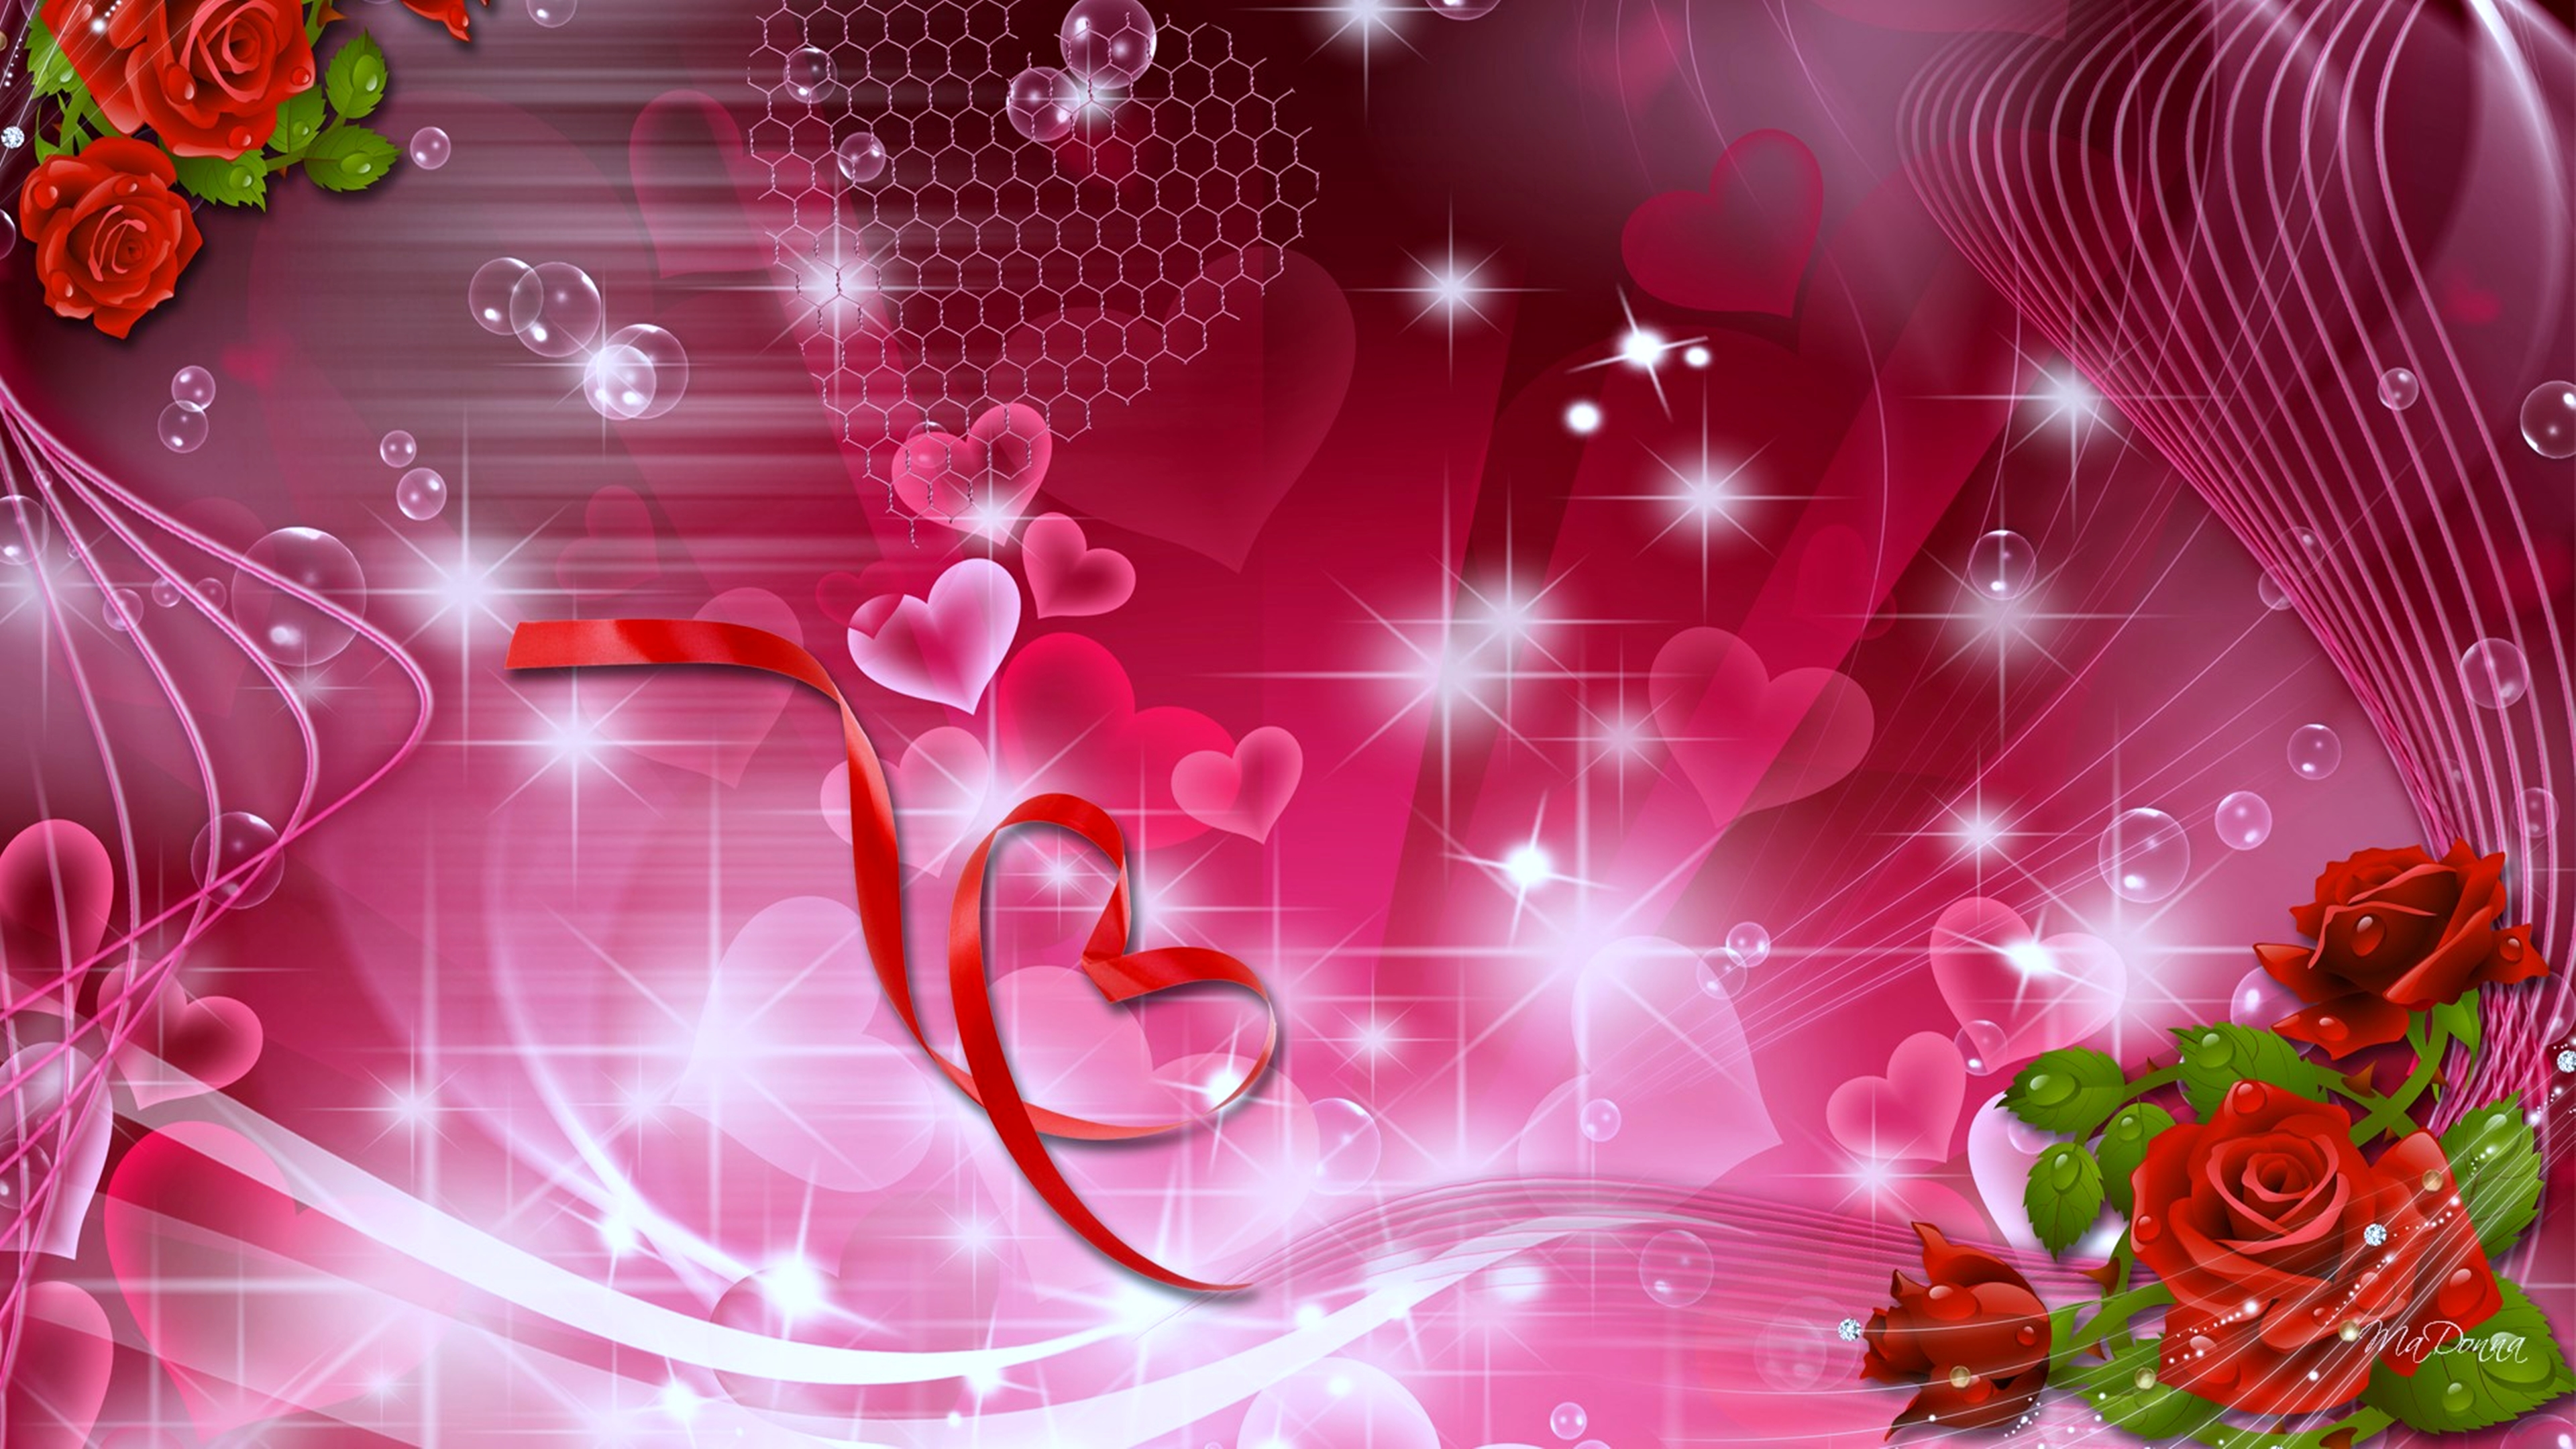 Romantic Moments Hd Wallpapers And Pictures Enjoy New And: Love Backgrounds, Pictures, Images